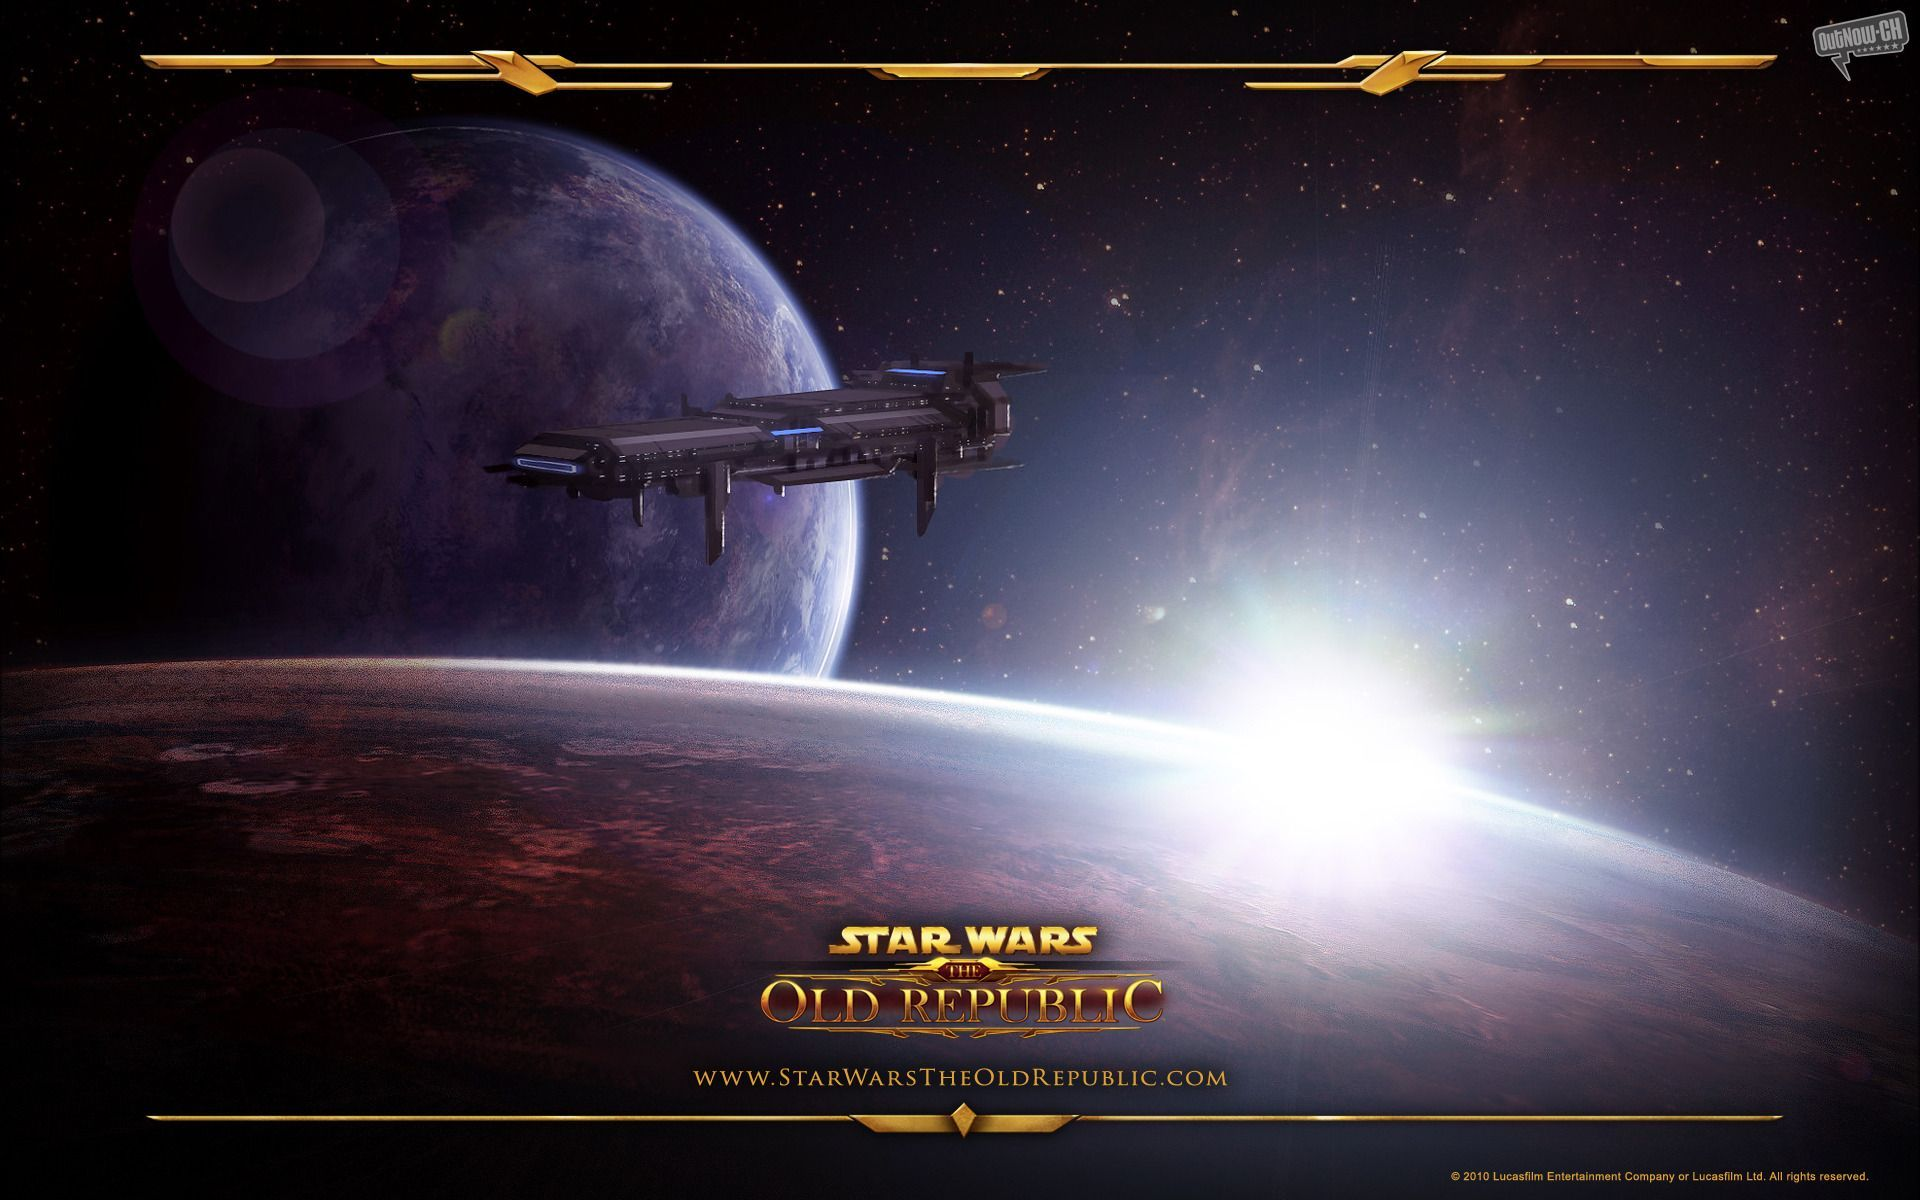 Swtor Iphone Wallpaper Posted By Michelle Cunningham